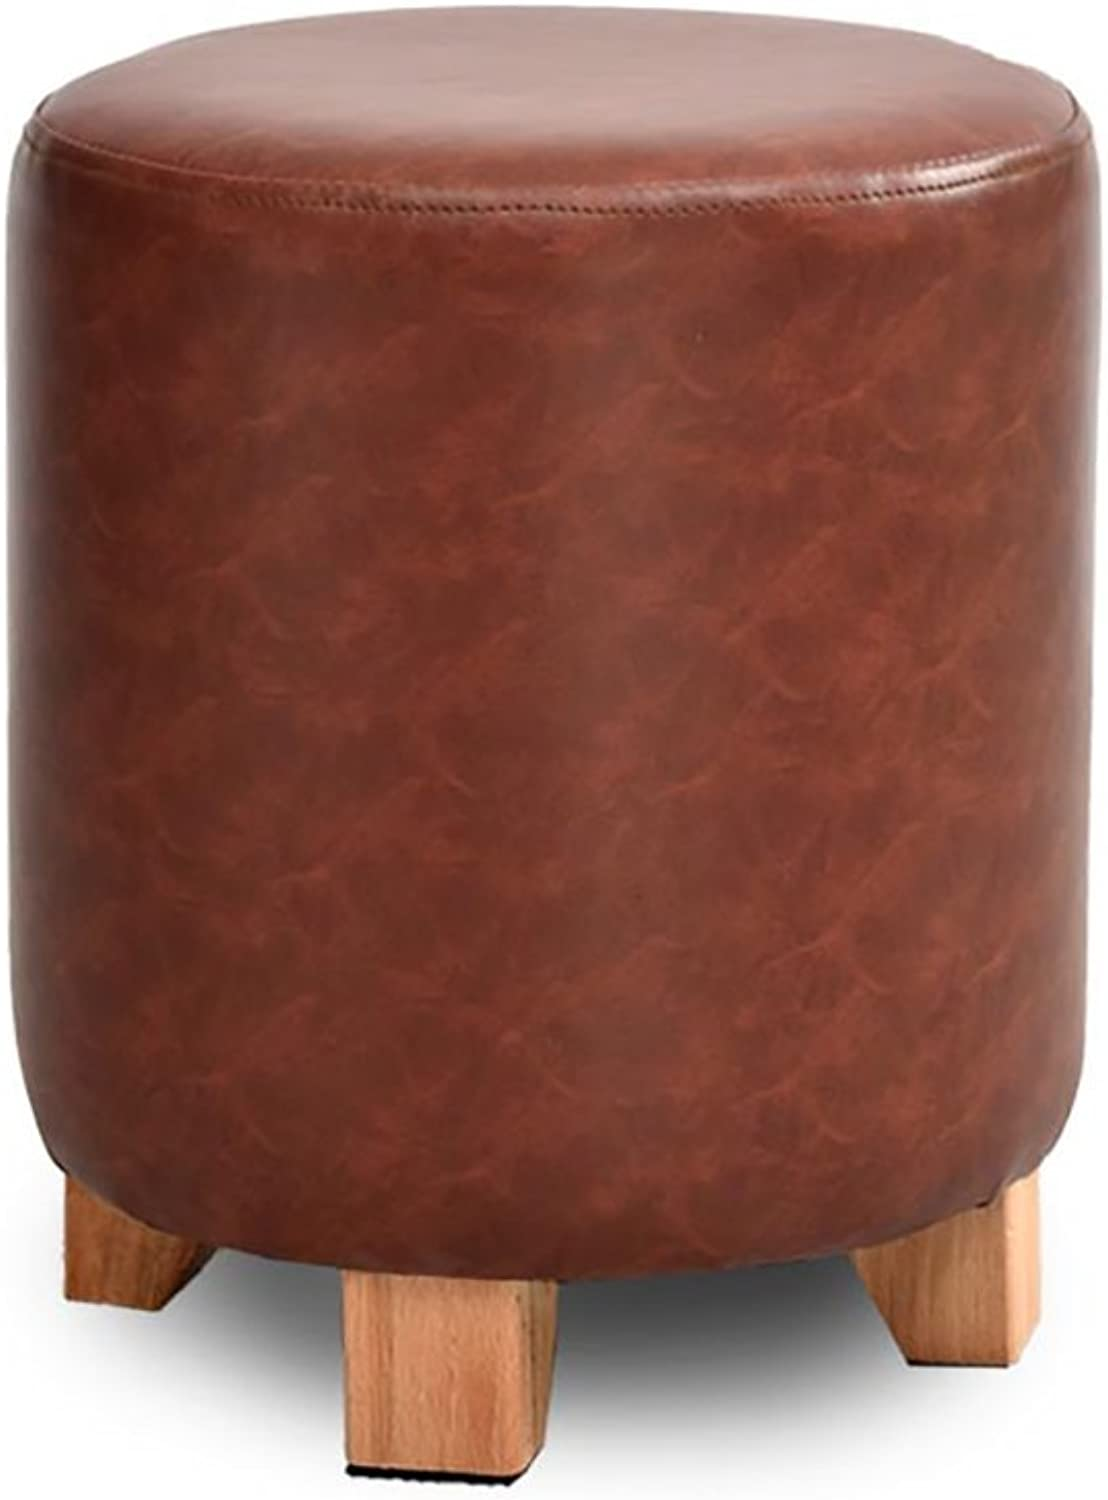 Solid Wood Leather Stool Sofa Stool Small Stool, Dressing Stool Stool shoes Bench Solid Wood Frame Durable, Multi-color Optional